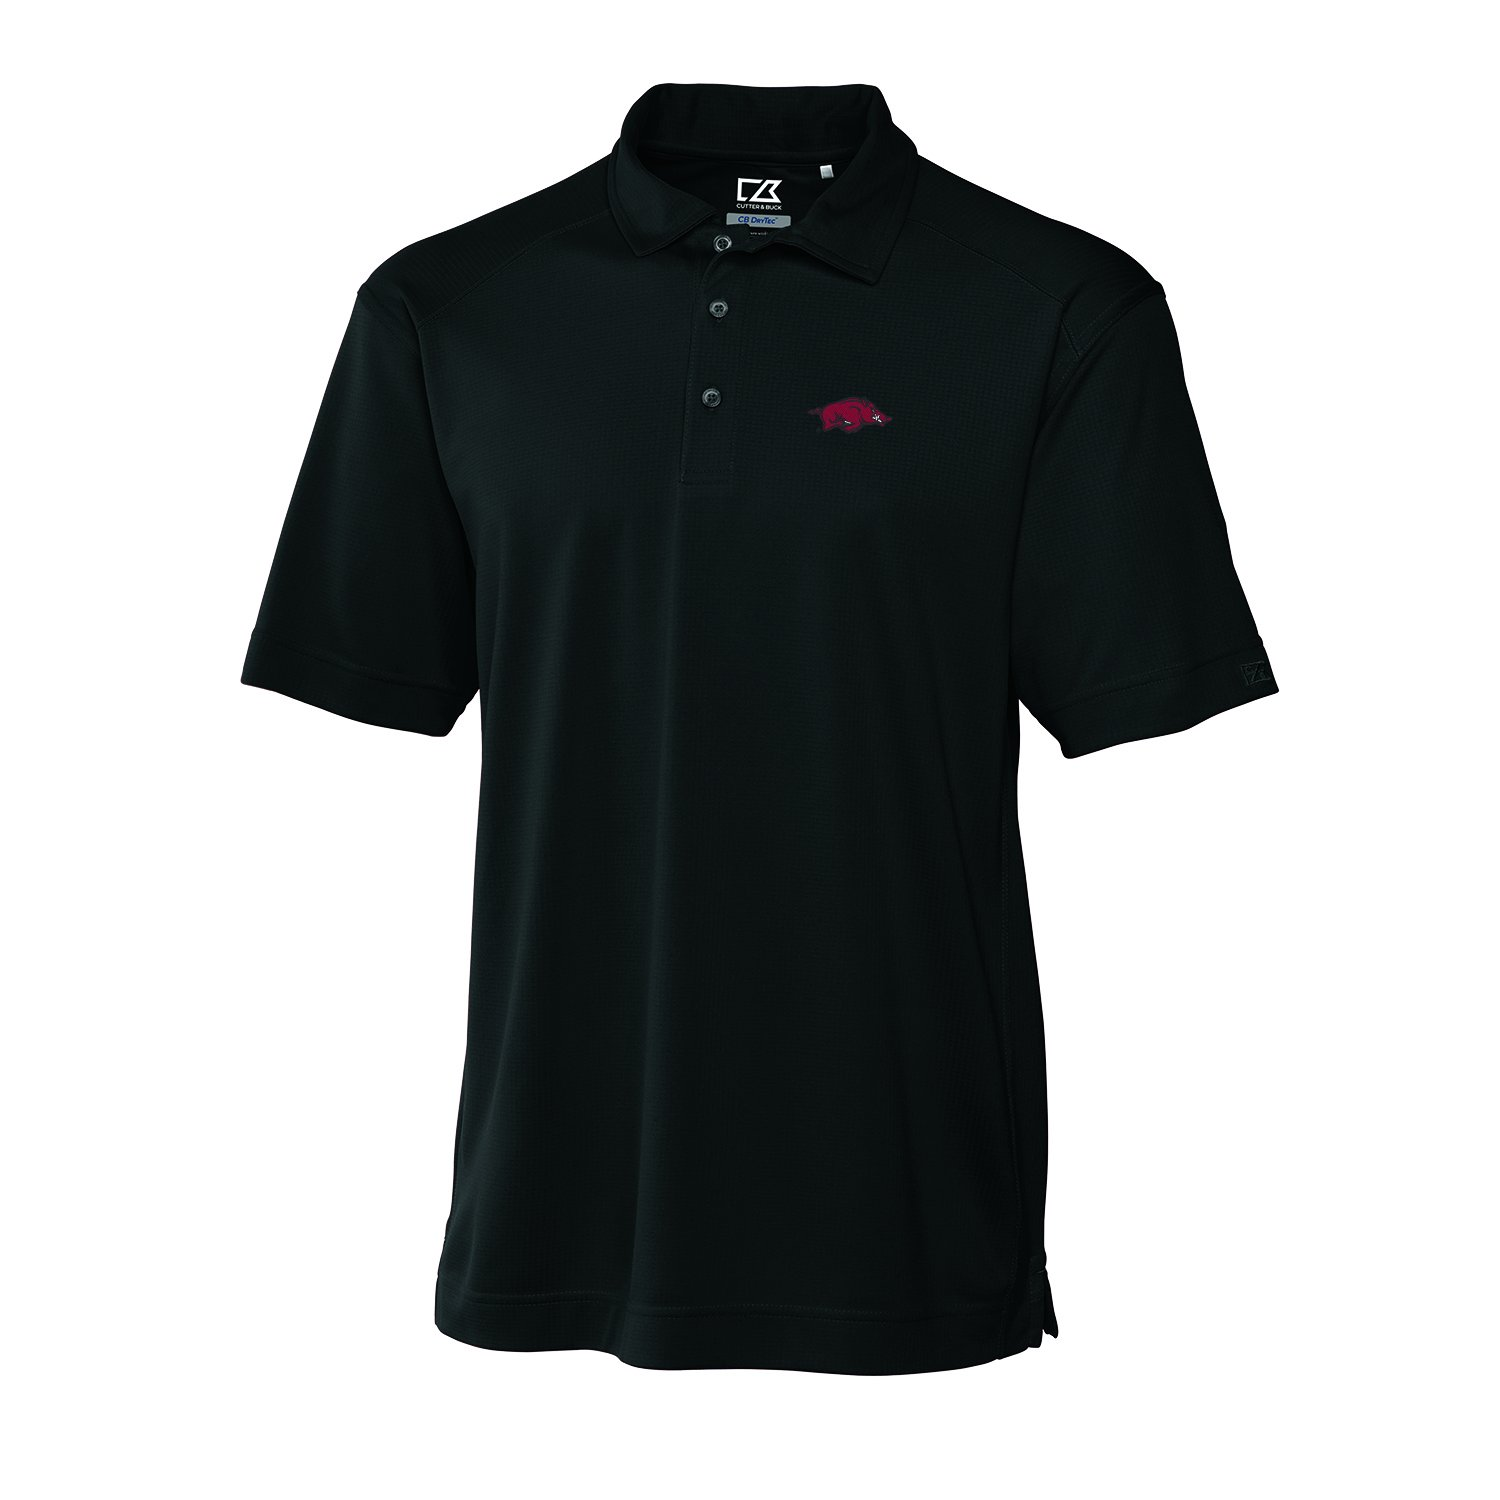 NCAA Men's Arkansas Razorbacks Black Drytec Genre Polo Tee